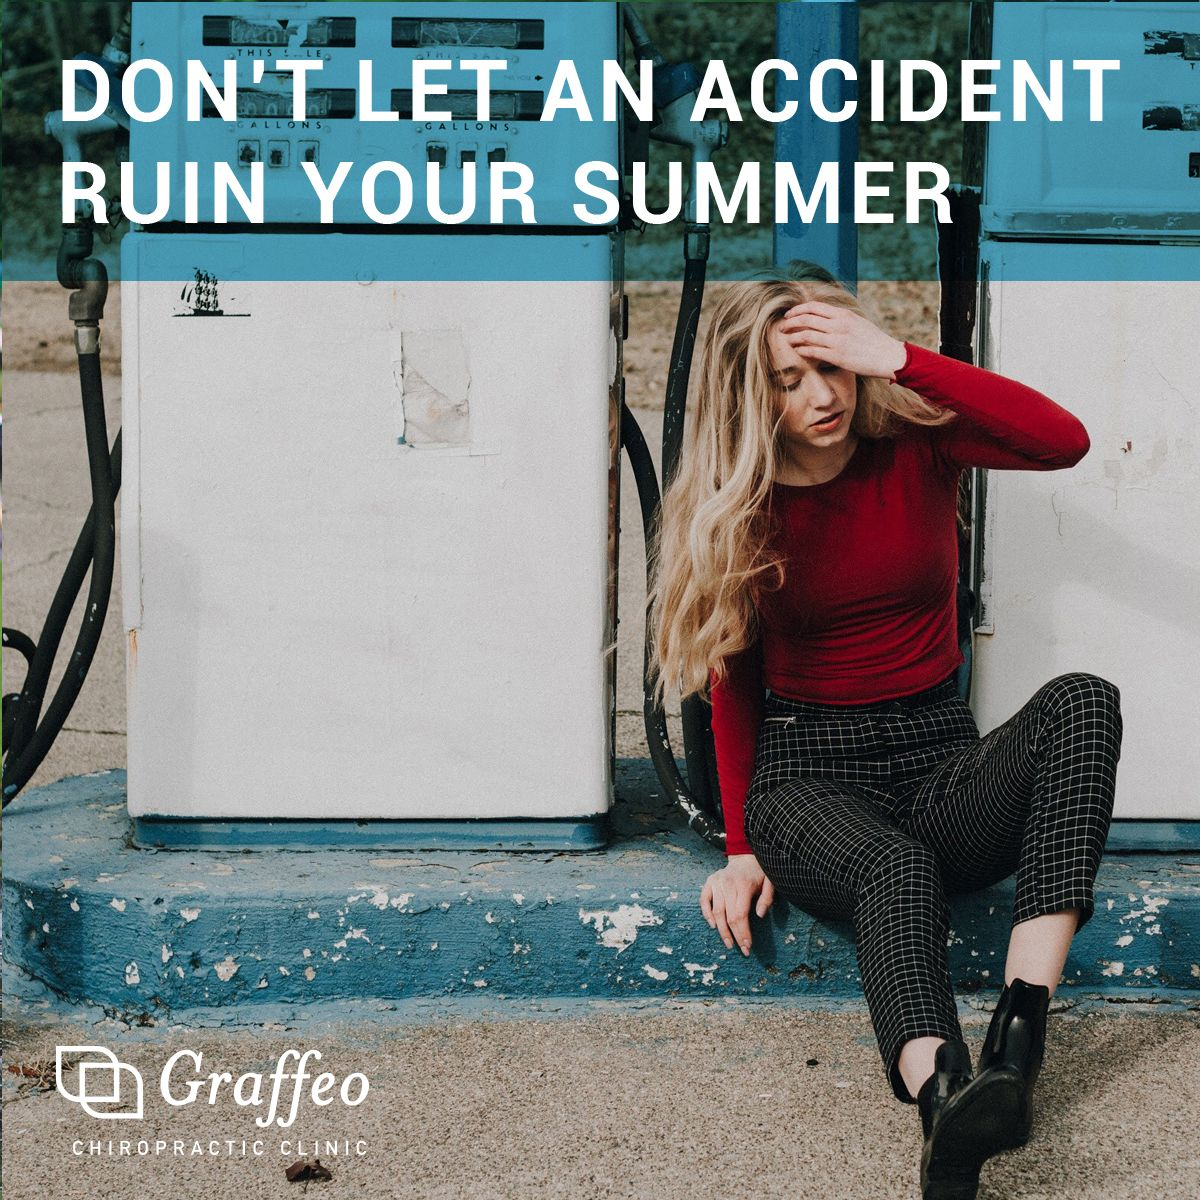 Auto accident injuries car accident injuries accident